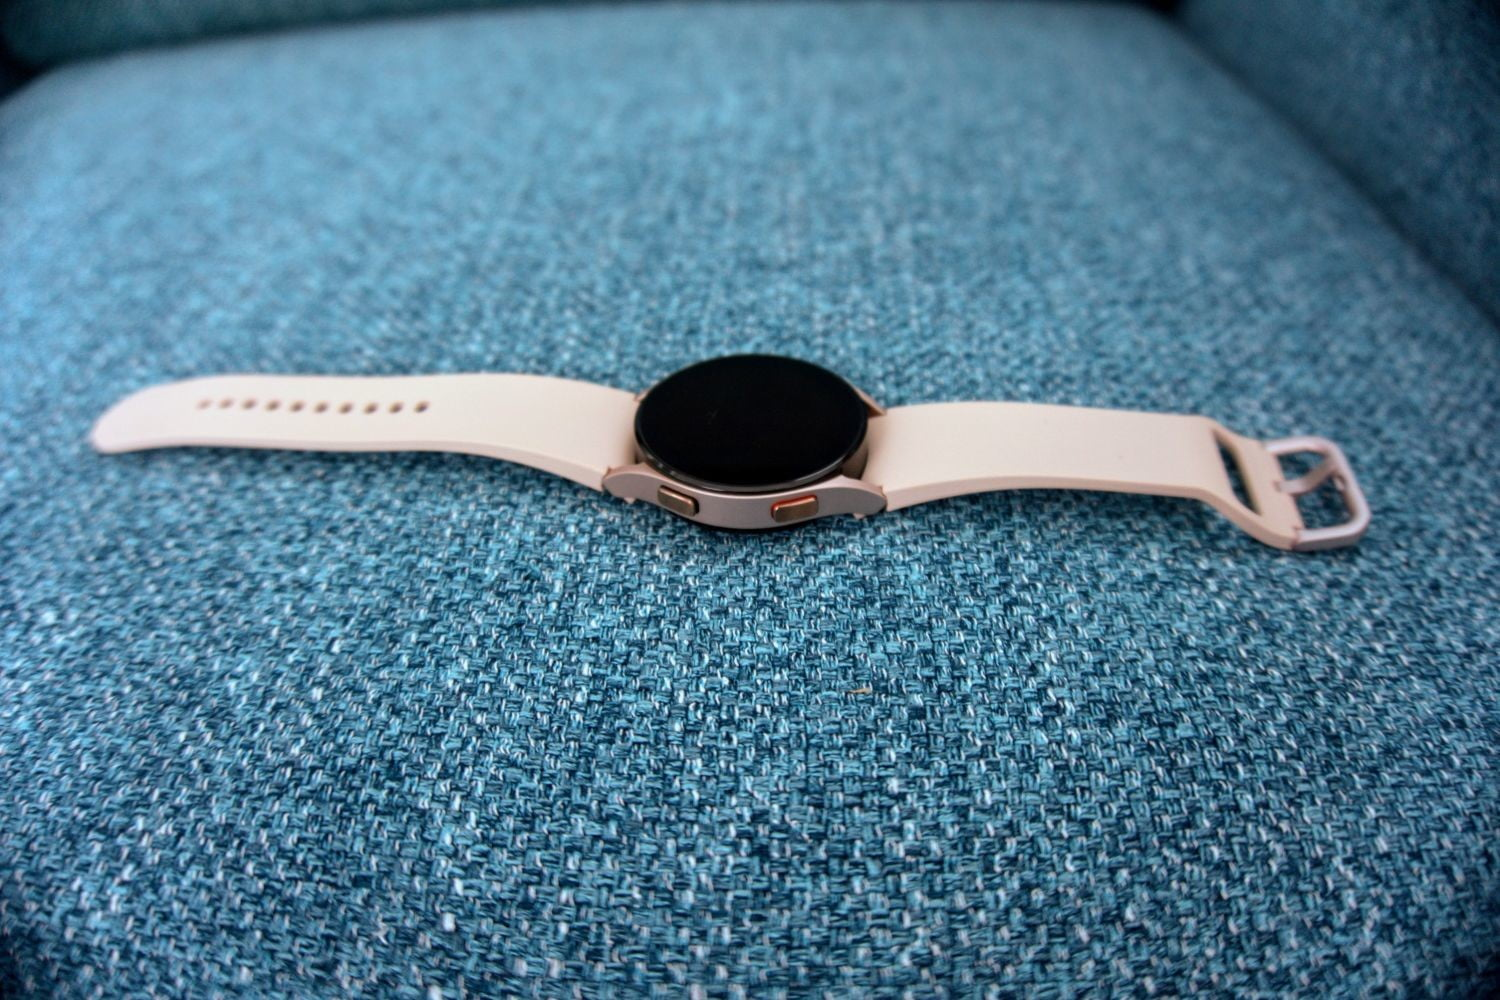 Watch 4 showing side buttons.